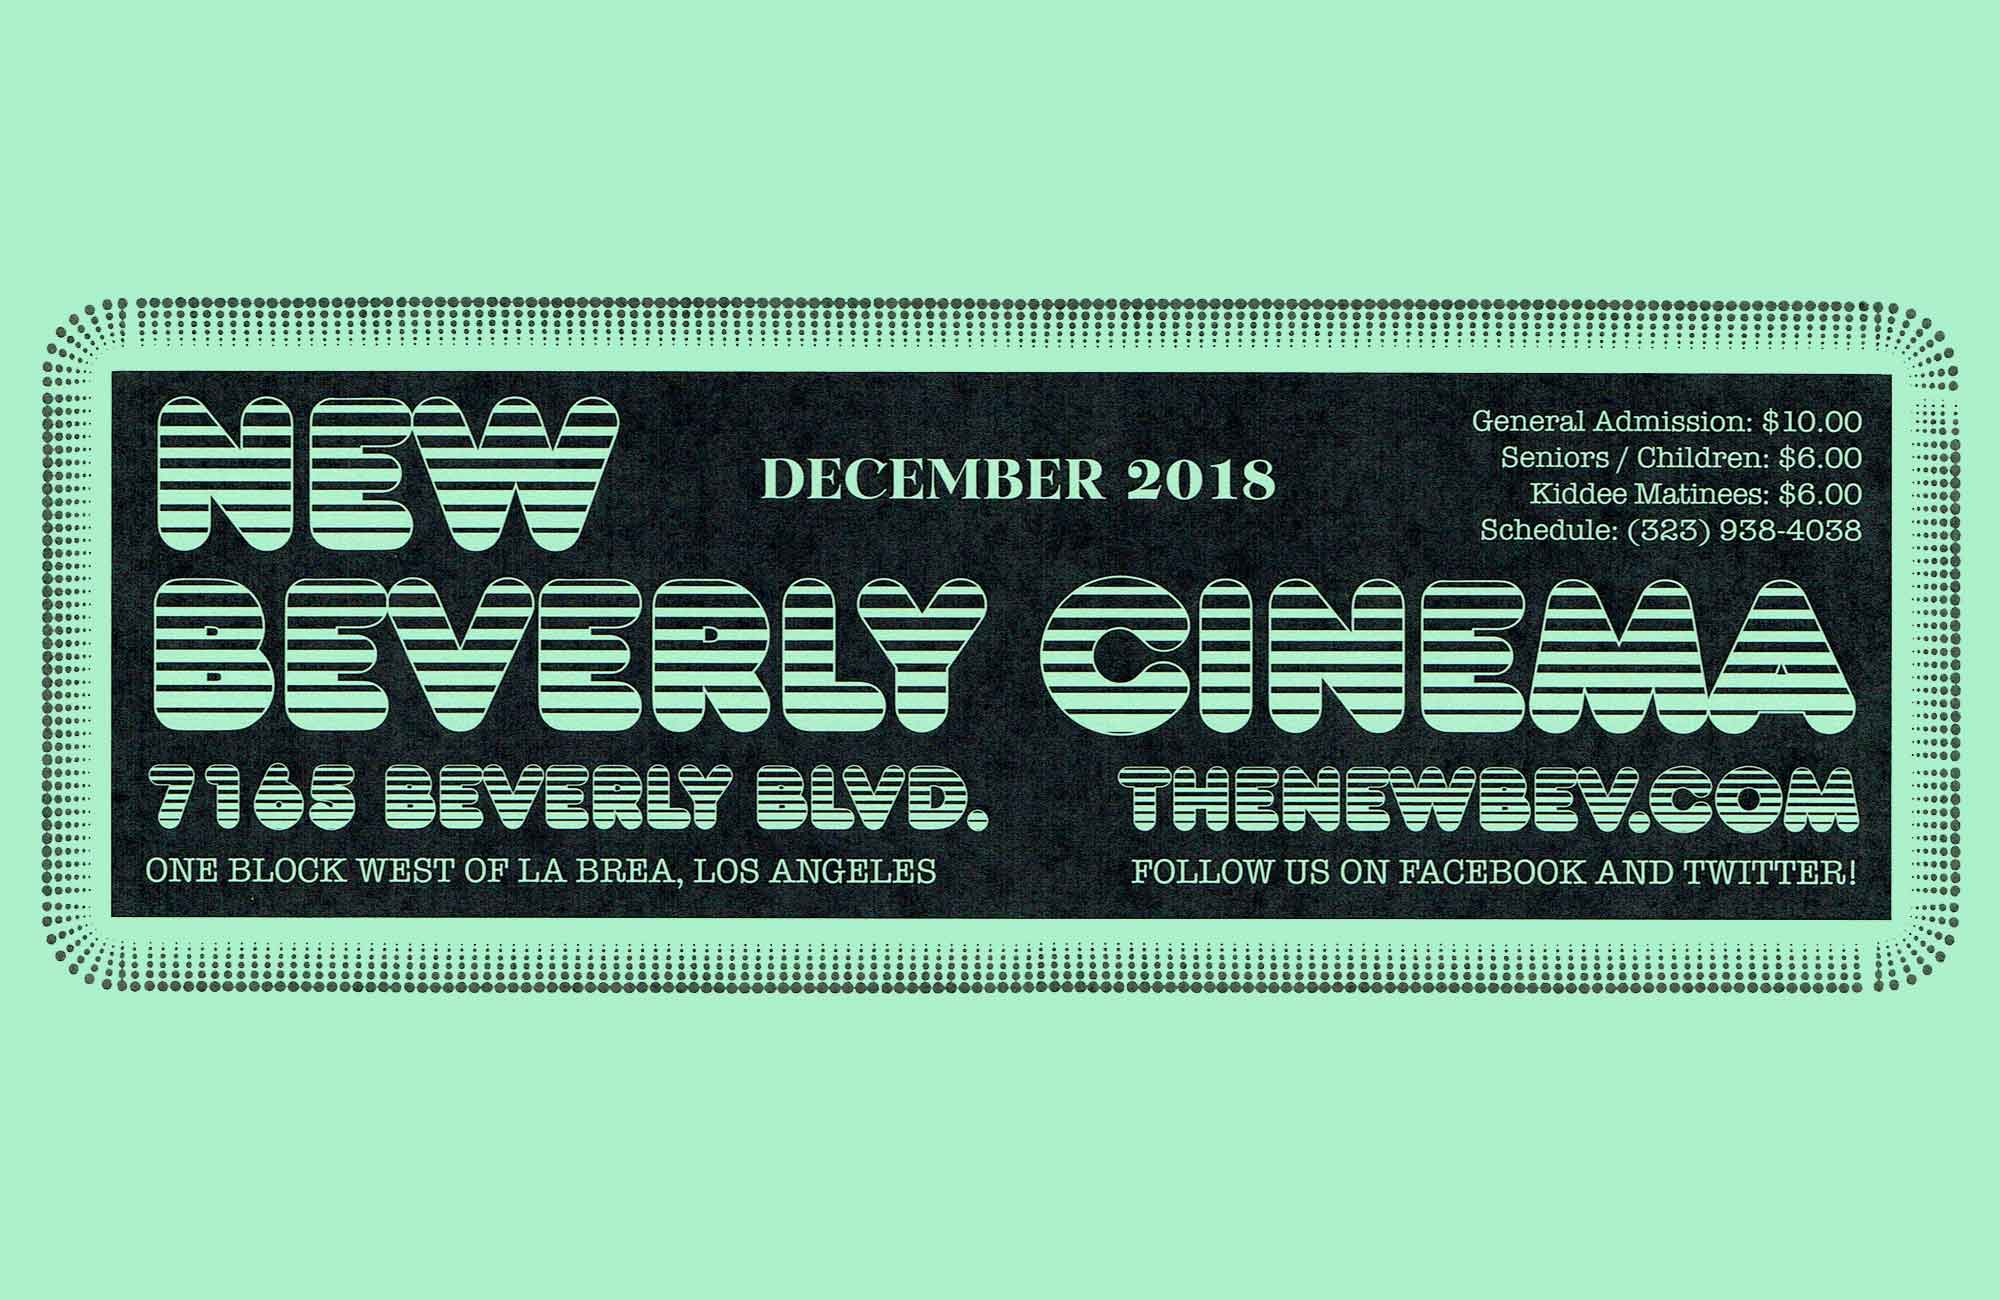 Pure Cinema Podcast: December '18 Calendar